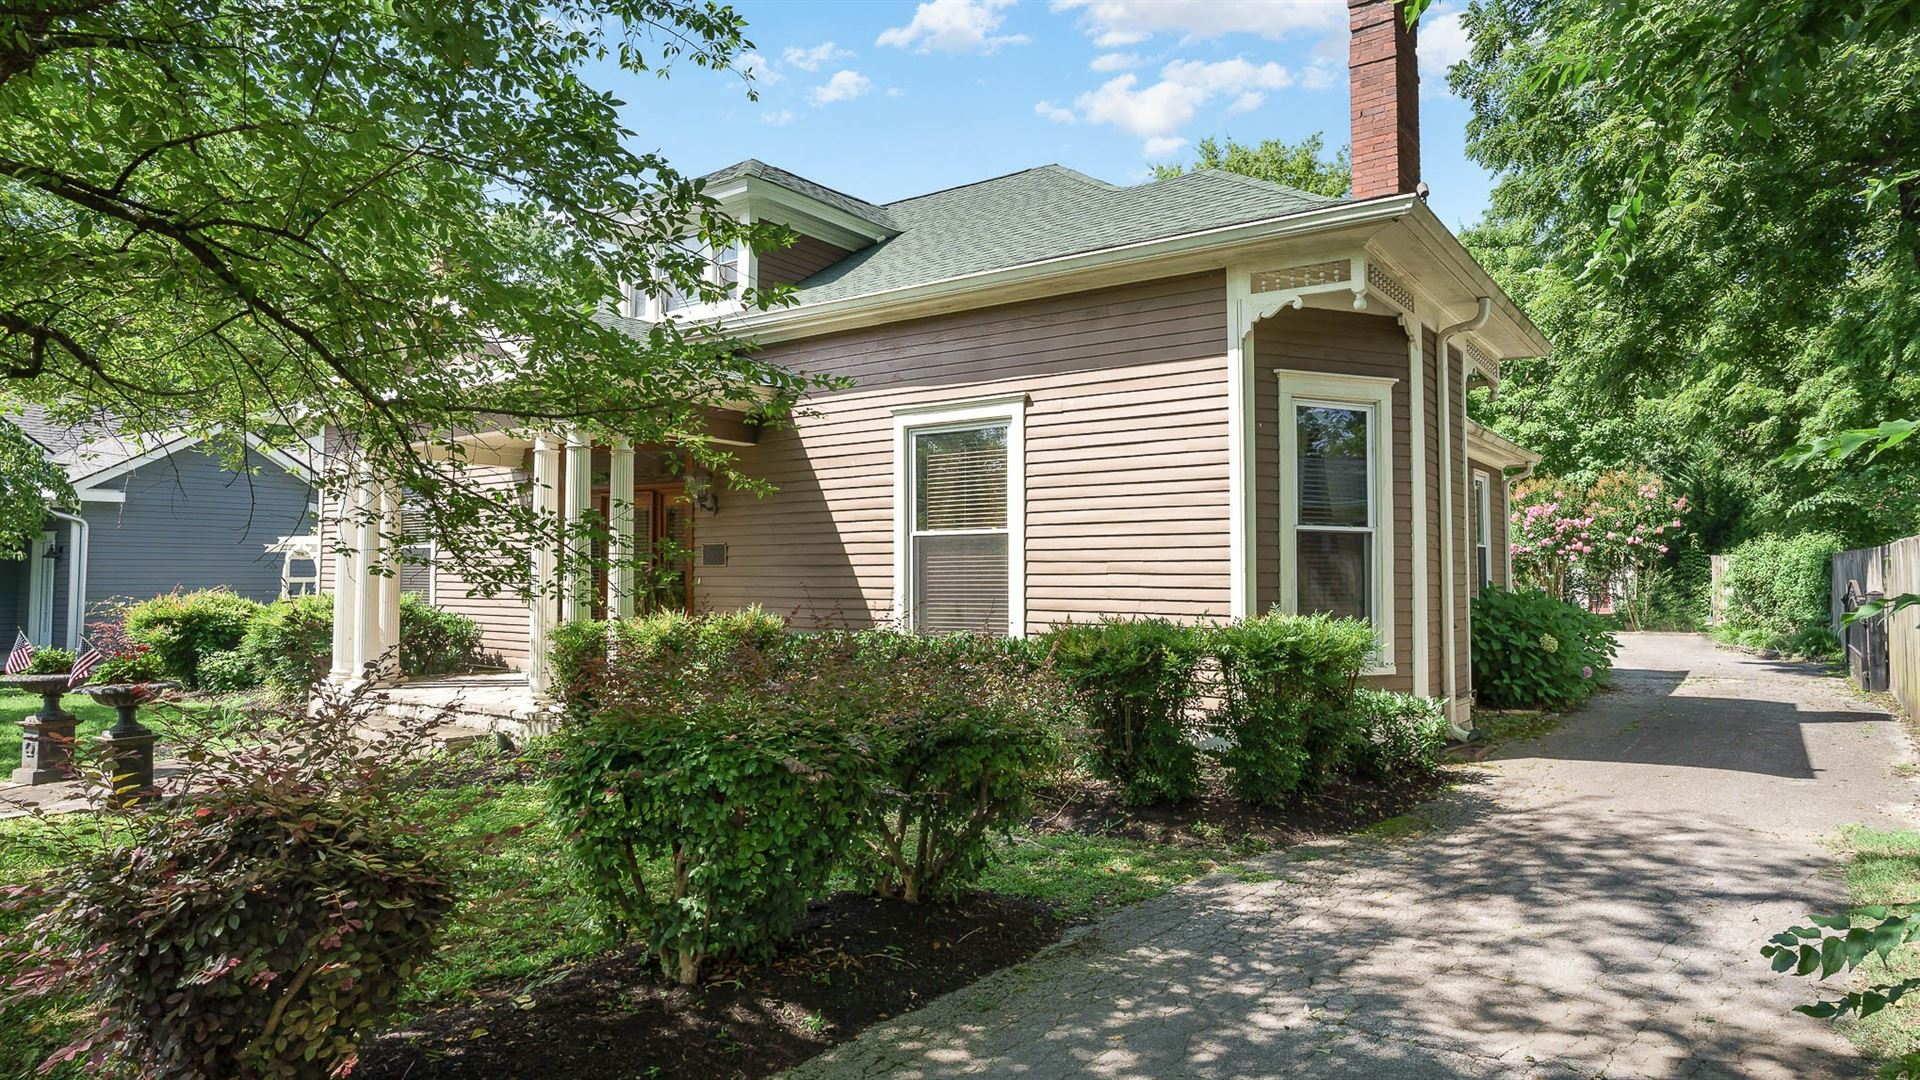 Photo of 334 3rd Ave S, Franklin, TN 37064 (MLS # 2296137)